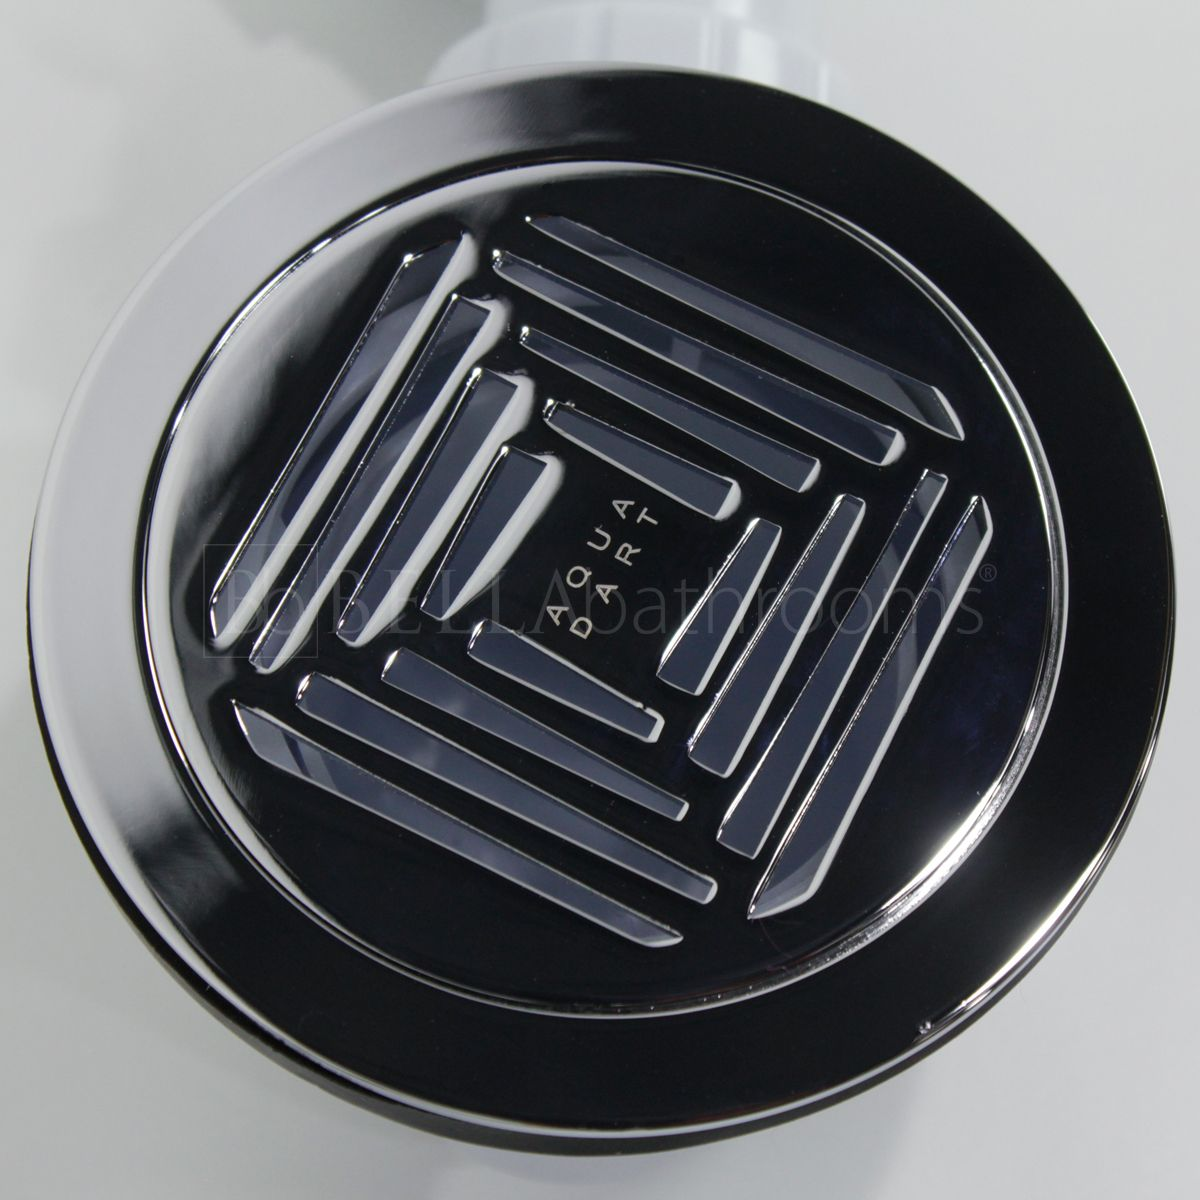 Aquadart 90mm Shower Waste with Chrome Grate Top